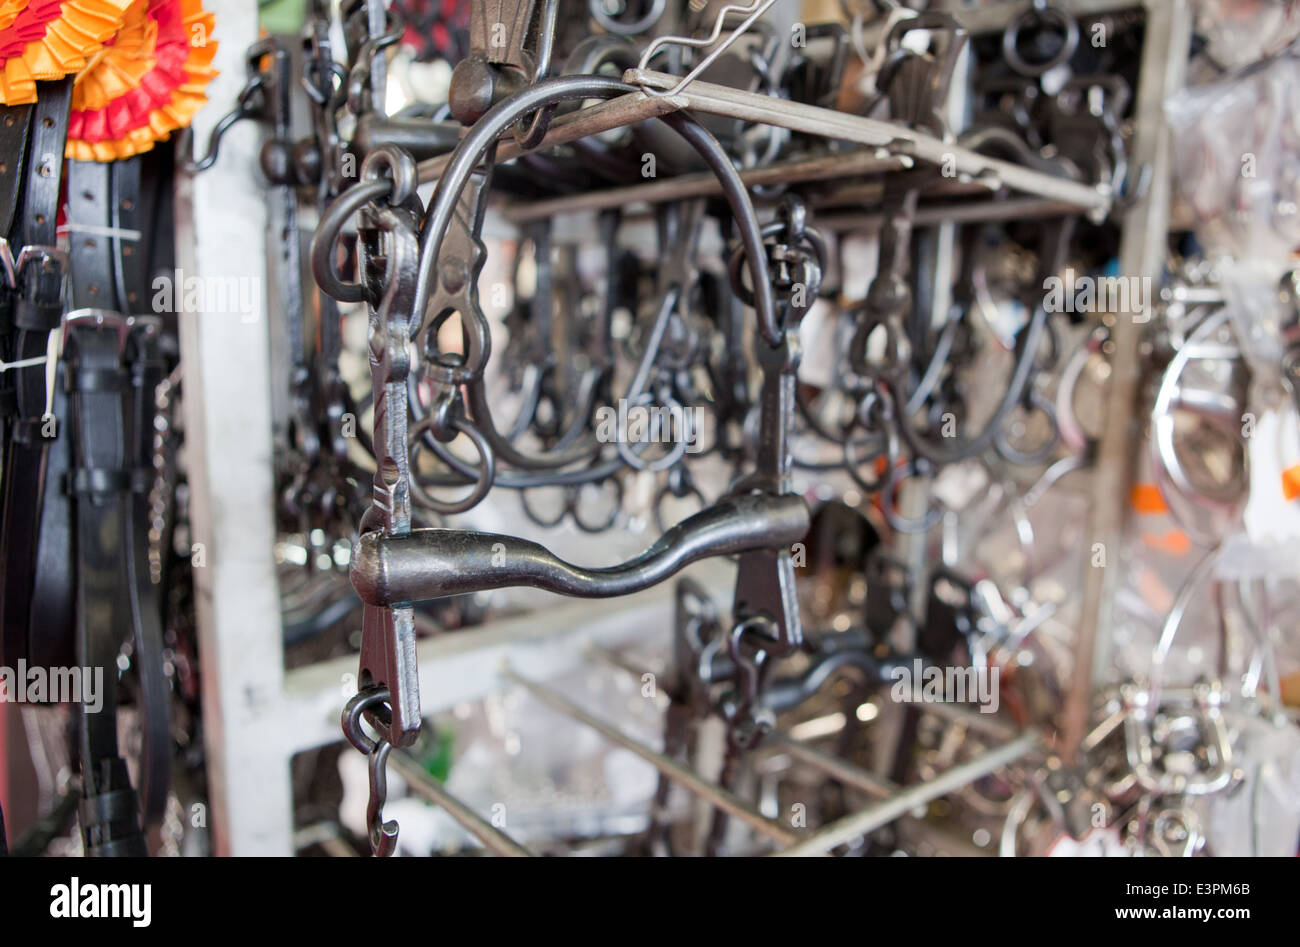 Tack Shop Stock Photos & Tack Shop Stock Images - Alamy